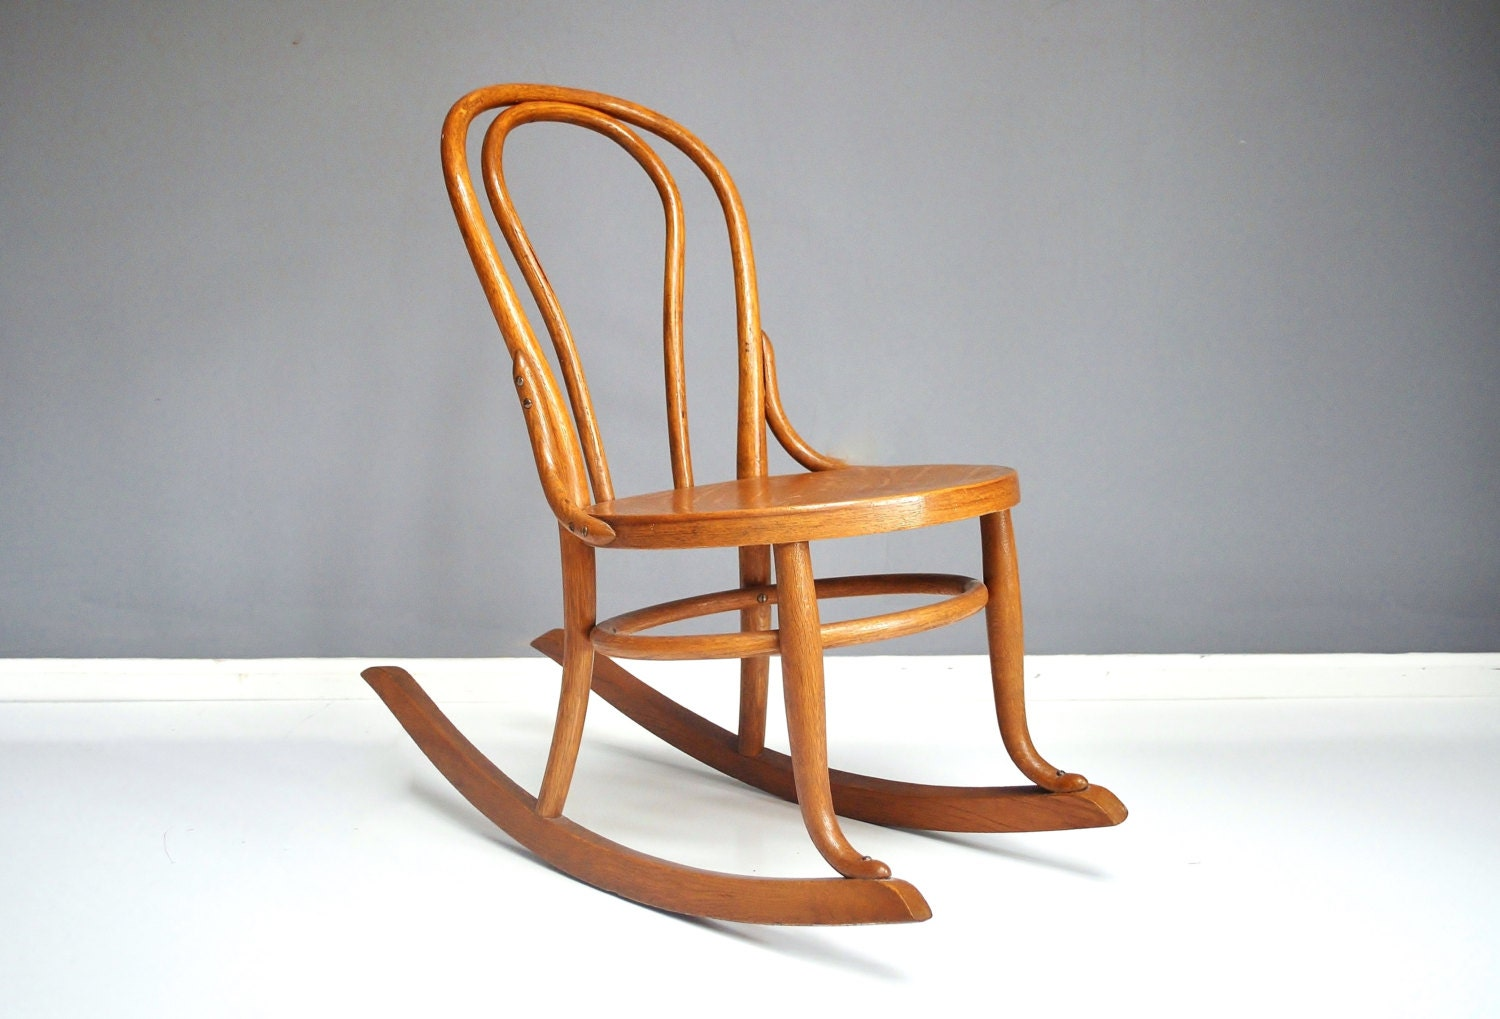 Vintage Bentwood Rocking Chair By Thewhitepepper On Etsy